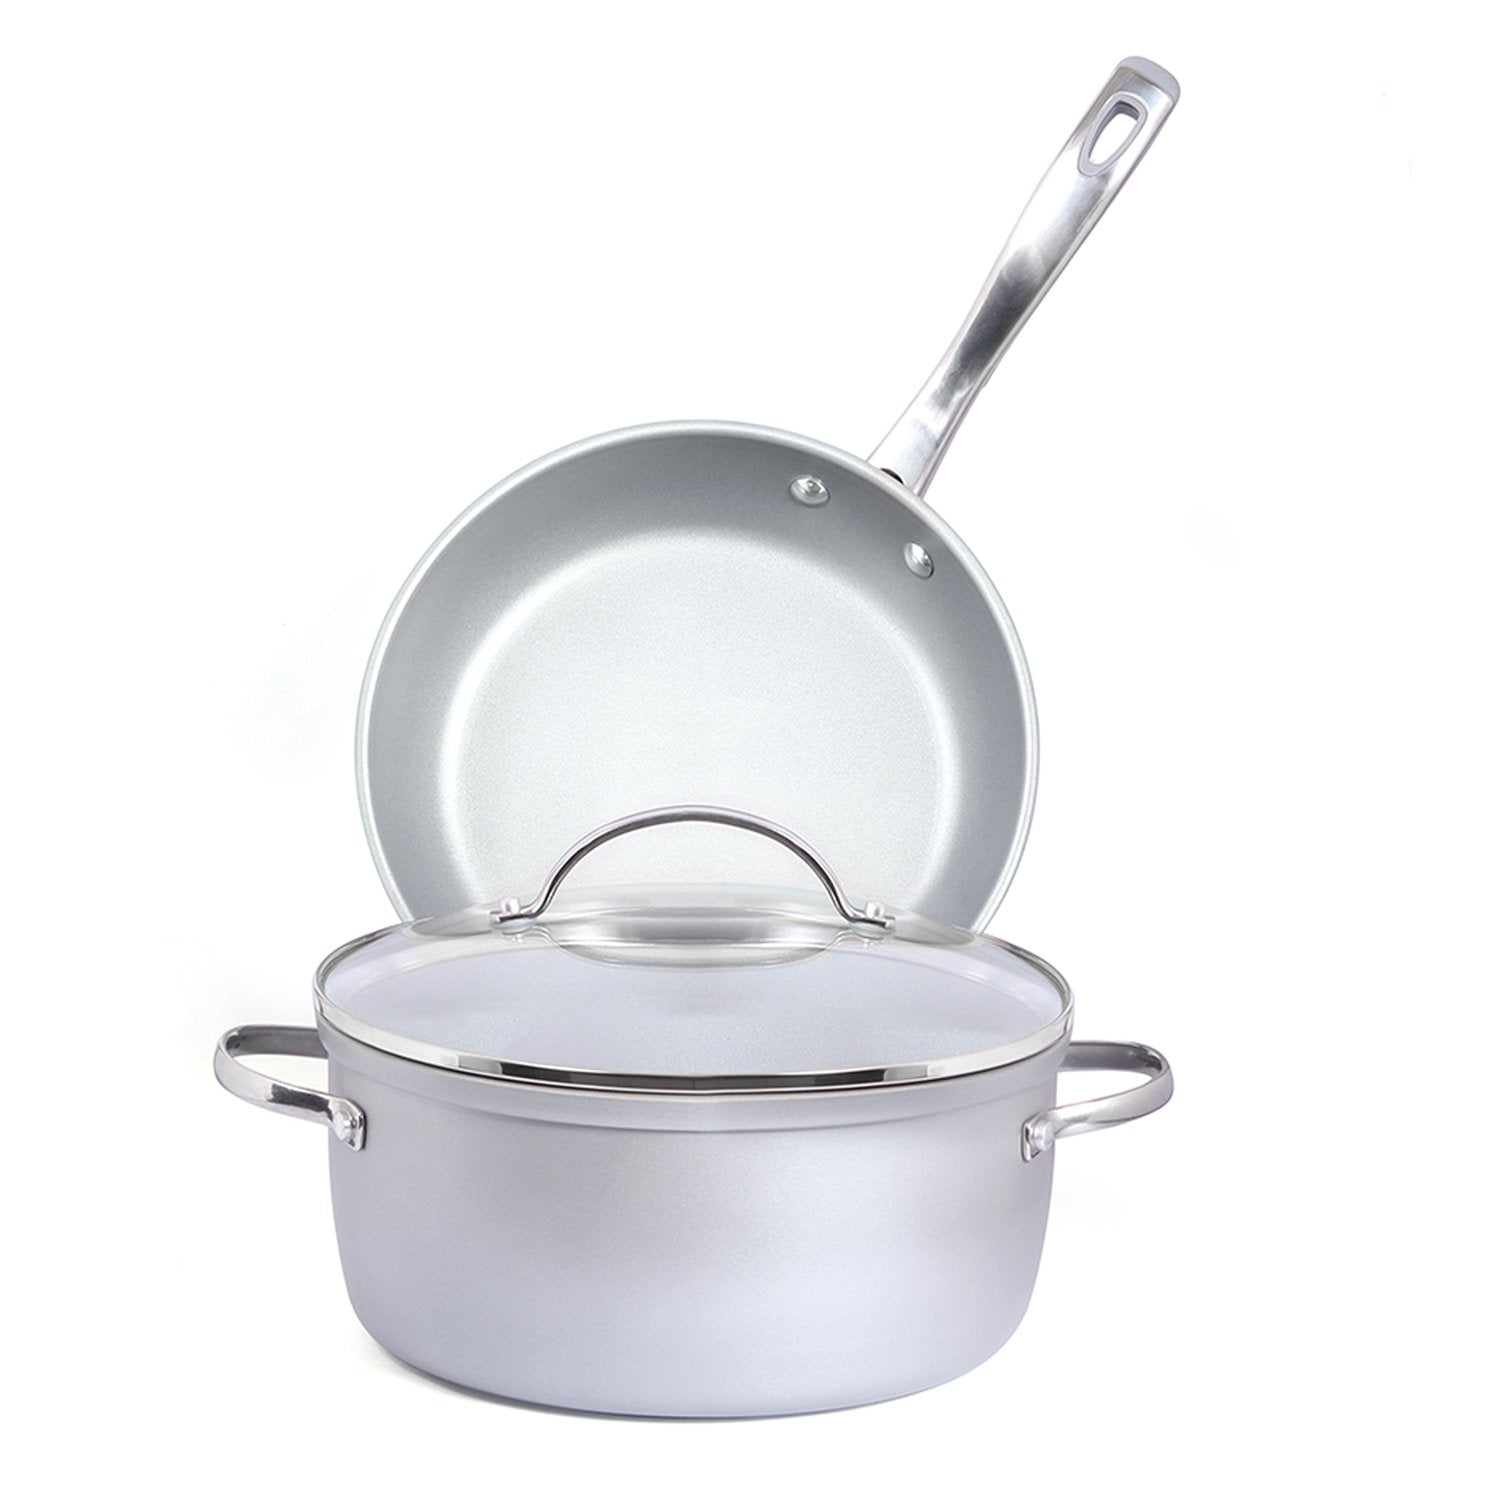 Meyer Prism Non-Stick 3pcs Interchangeable Lid Cookware Set (24cm Casserole + 24cm Frypan) - PotsandPans